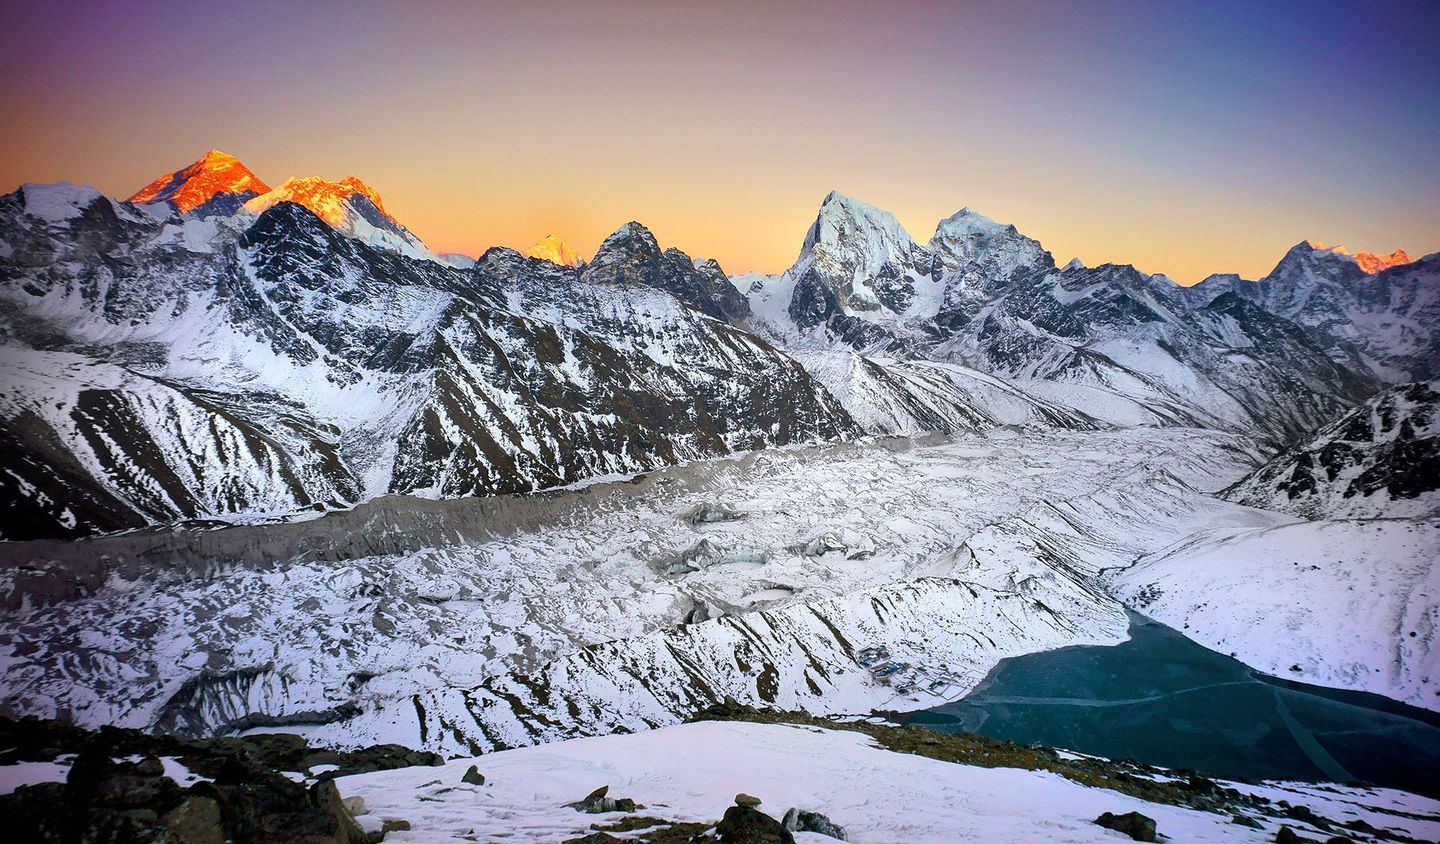 Nepal%20view%20of%20mt%20everest%20from%20gokyo%20ri%20by%20joseph%20buchman